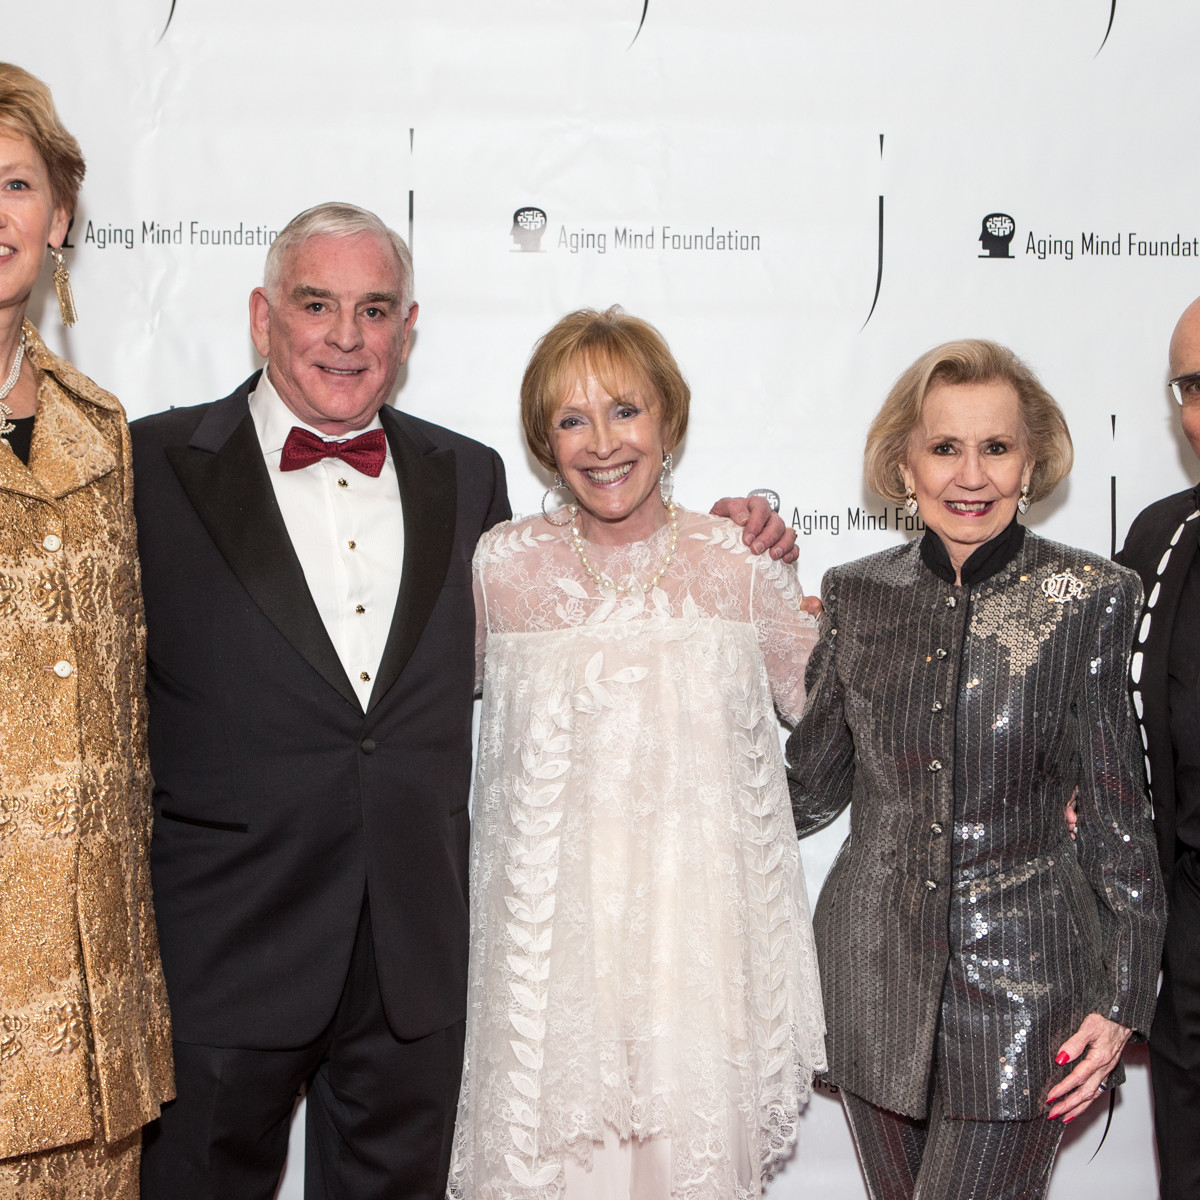 Kathy Nelson, 2019 Gala Chair; Ben Fischer, Laree Hulshoff, Co-Founder Aging Mind Foundation; Yvonne Crum, 2019 Gala Honoree and Michael Tregoning, President of Headington Companies.